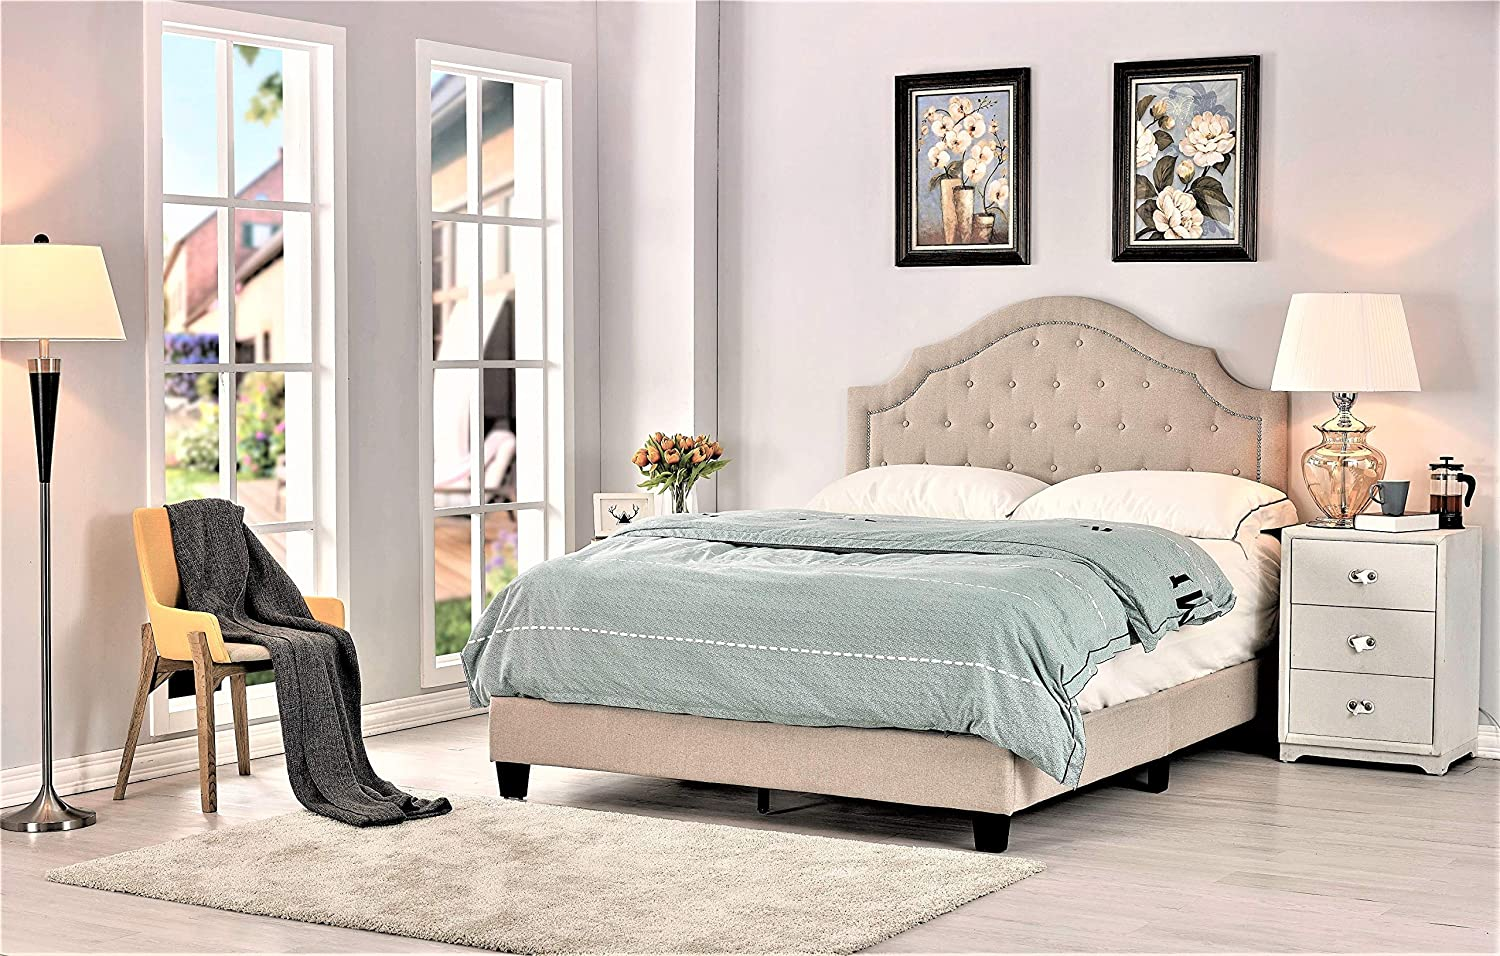 Container Furniture Direct Sklar Ultra Modern Button Tufted Upholstered Panel Bed, 82.70